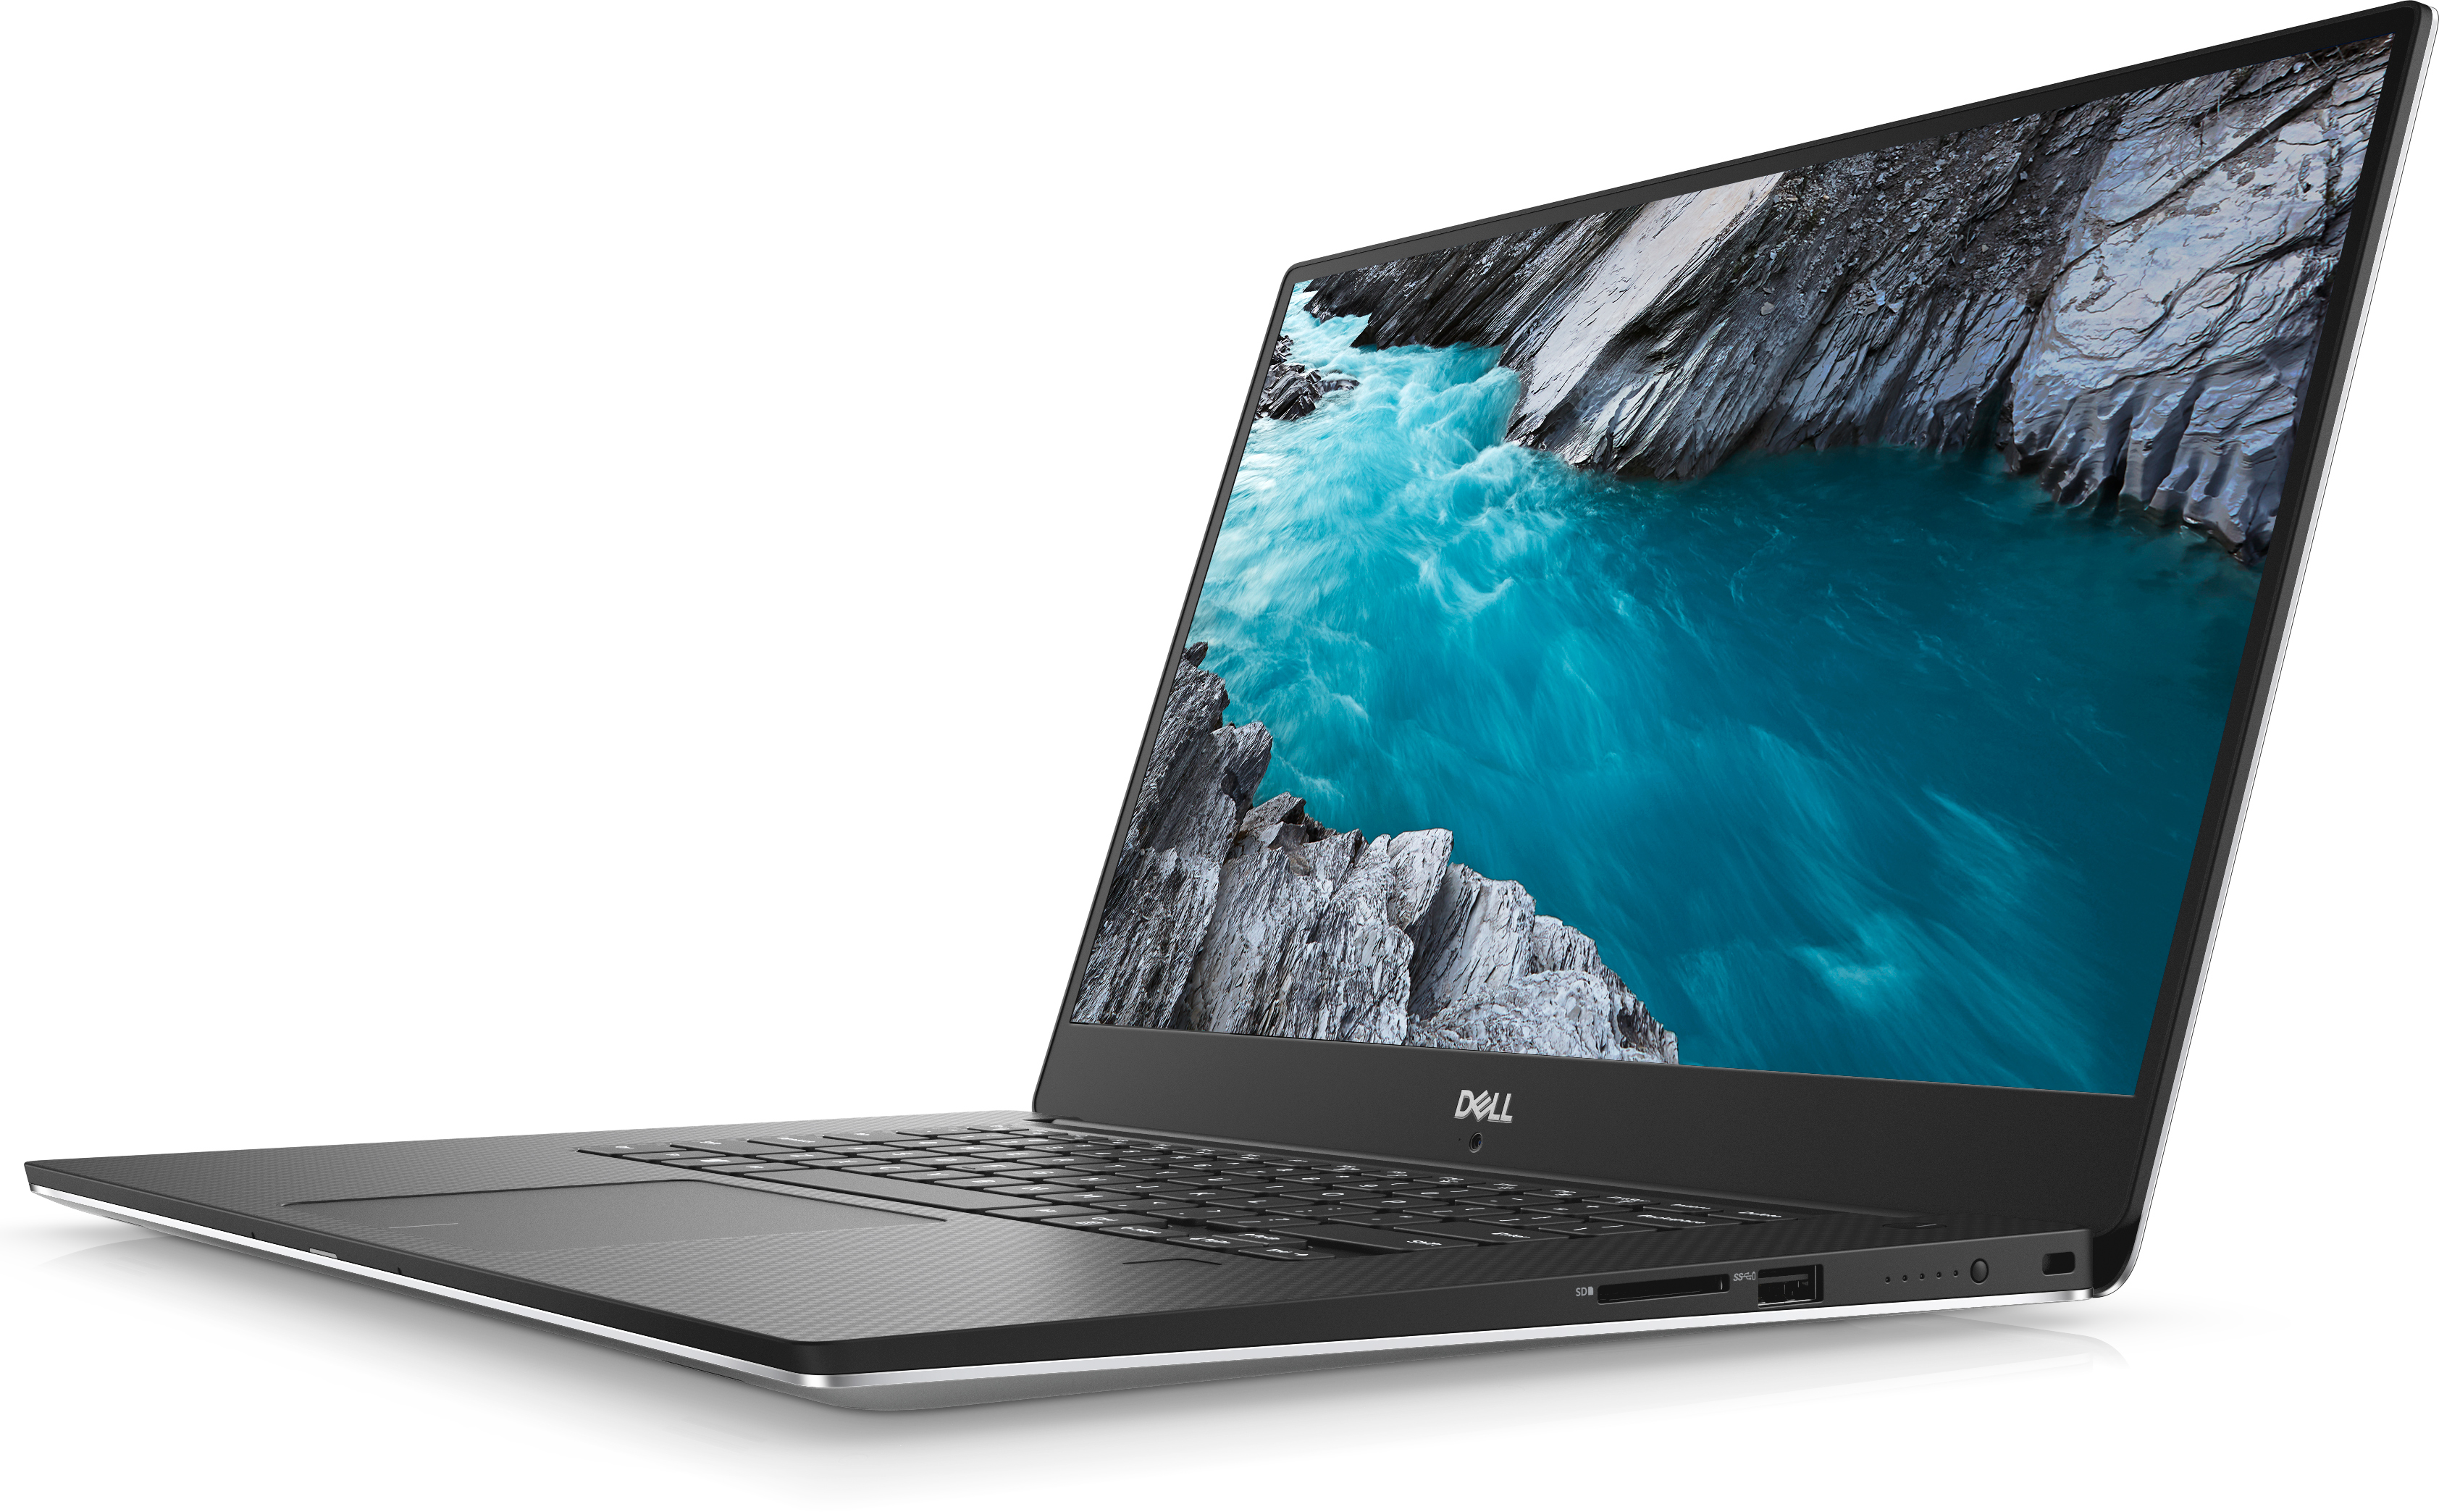 Moving on to connectivity, we have to keep in mind that the XPS 15 9570  borrows the chassis and some other components from the XPS 15 9560.